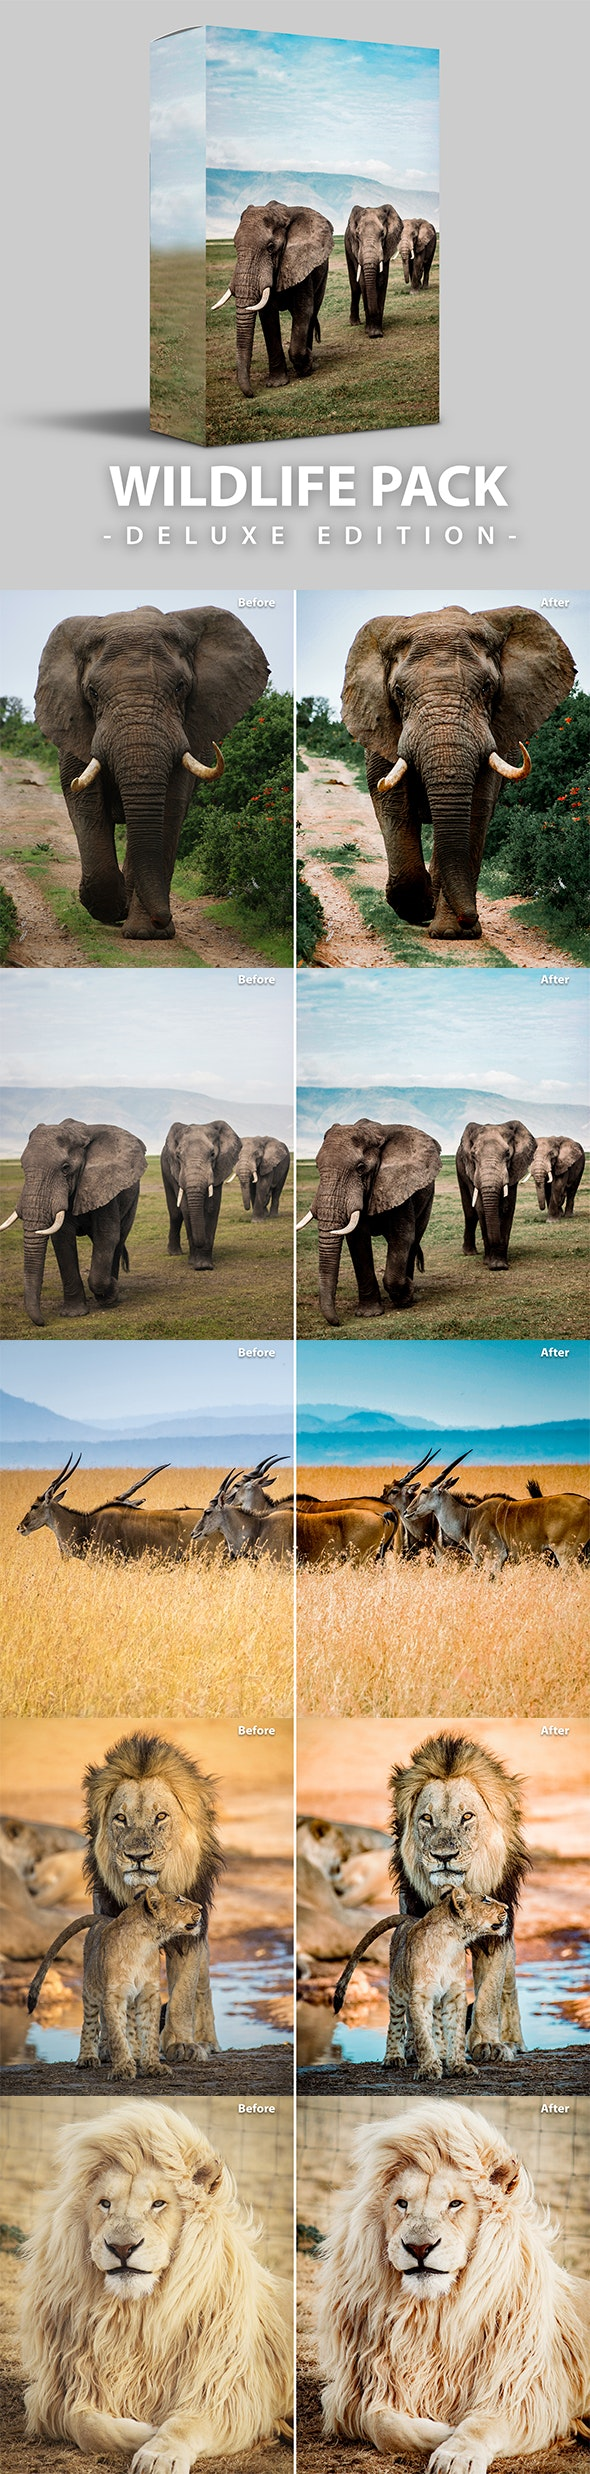 Wildlife | Deluxe  Edition for Mobile and Desktop - Lightroom Presets Add-ons